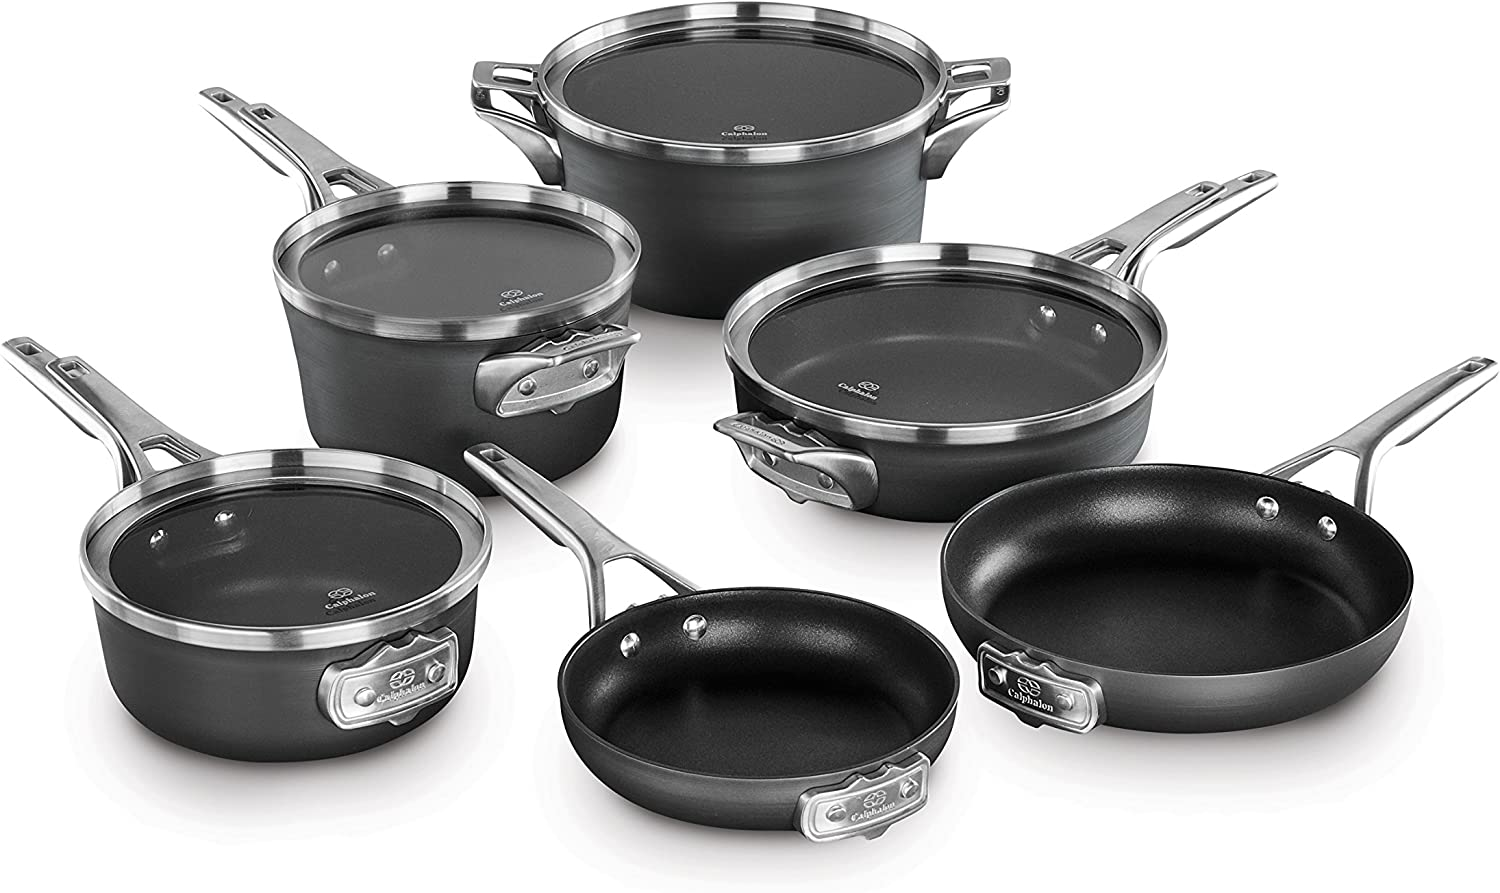 The Best Cookware Sets of 2020